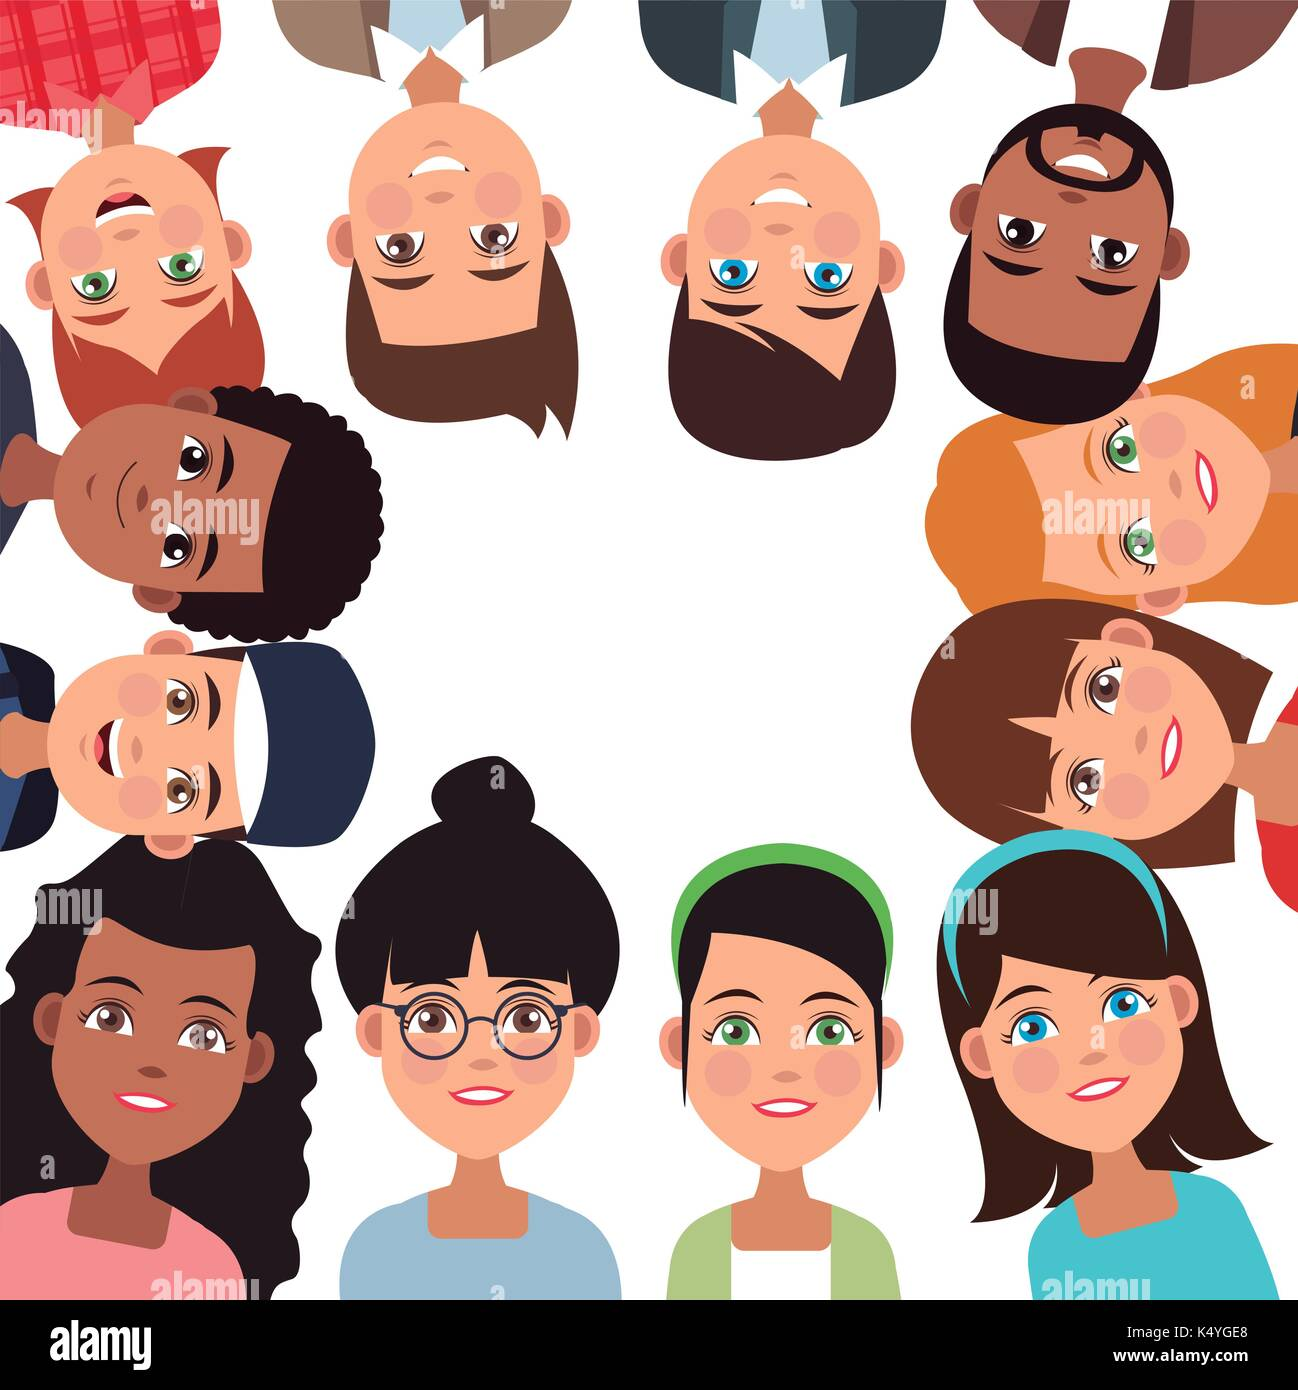 Friendship cartoon design - Stock Image